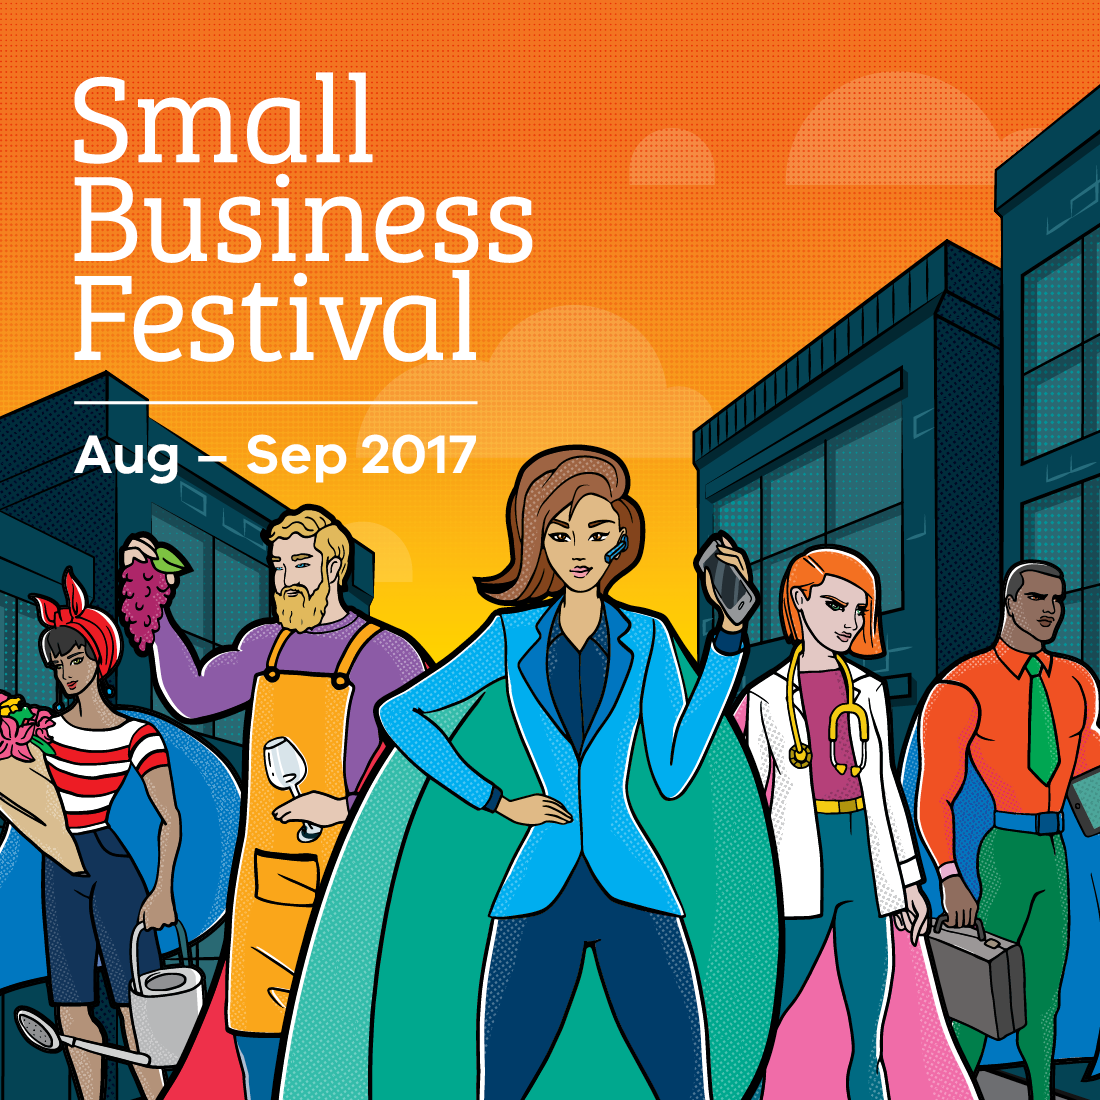 Small Business Festival 2017